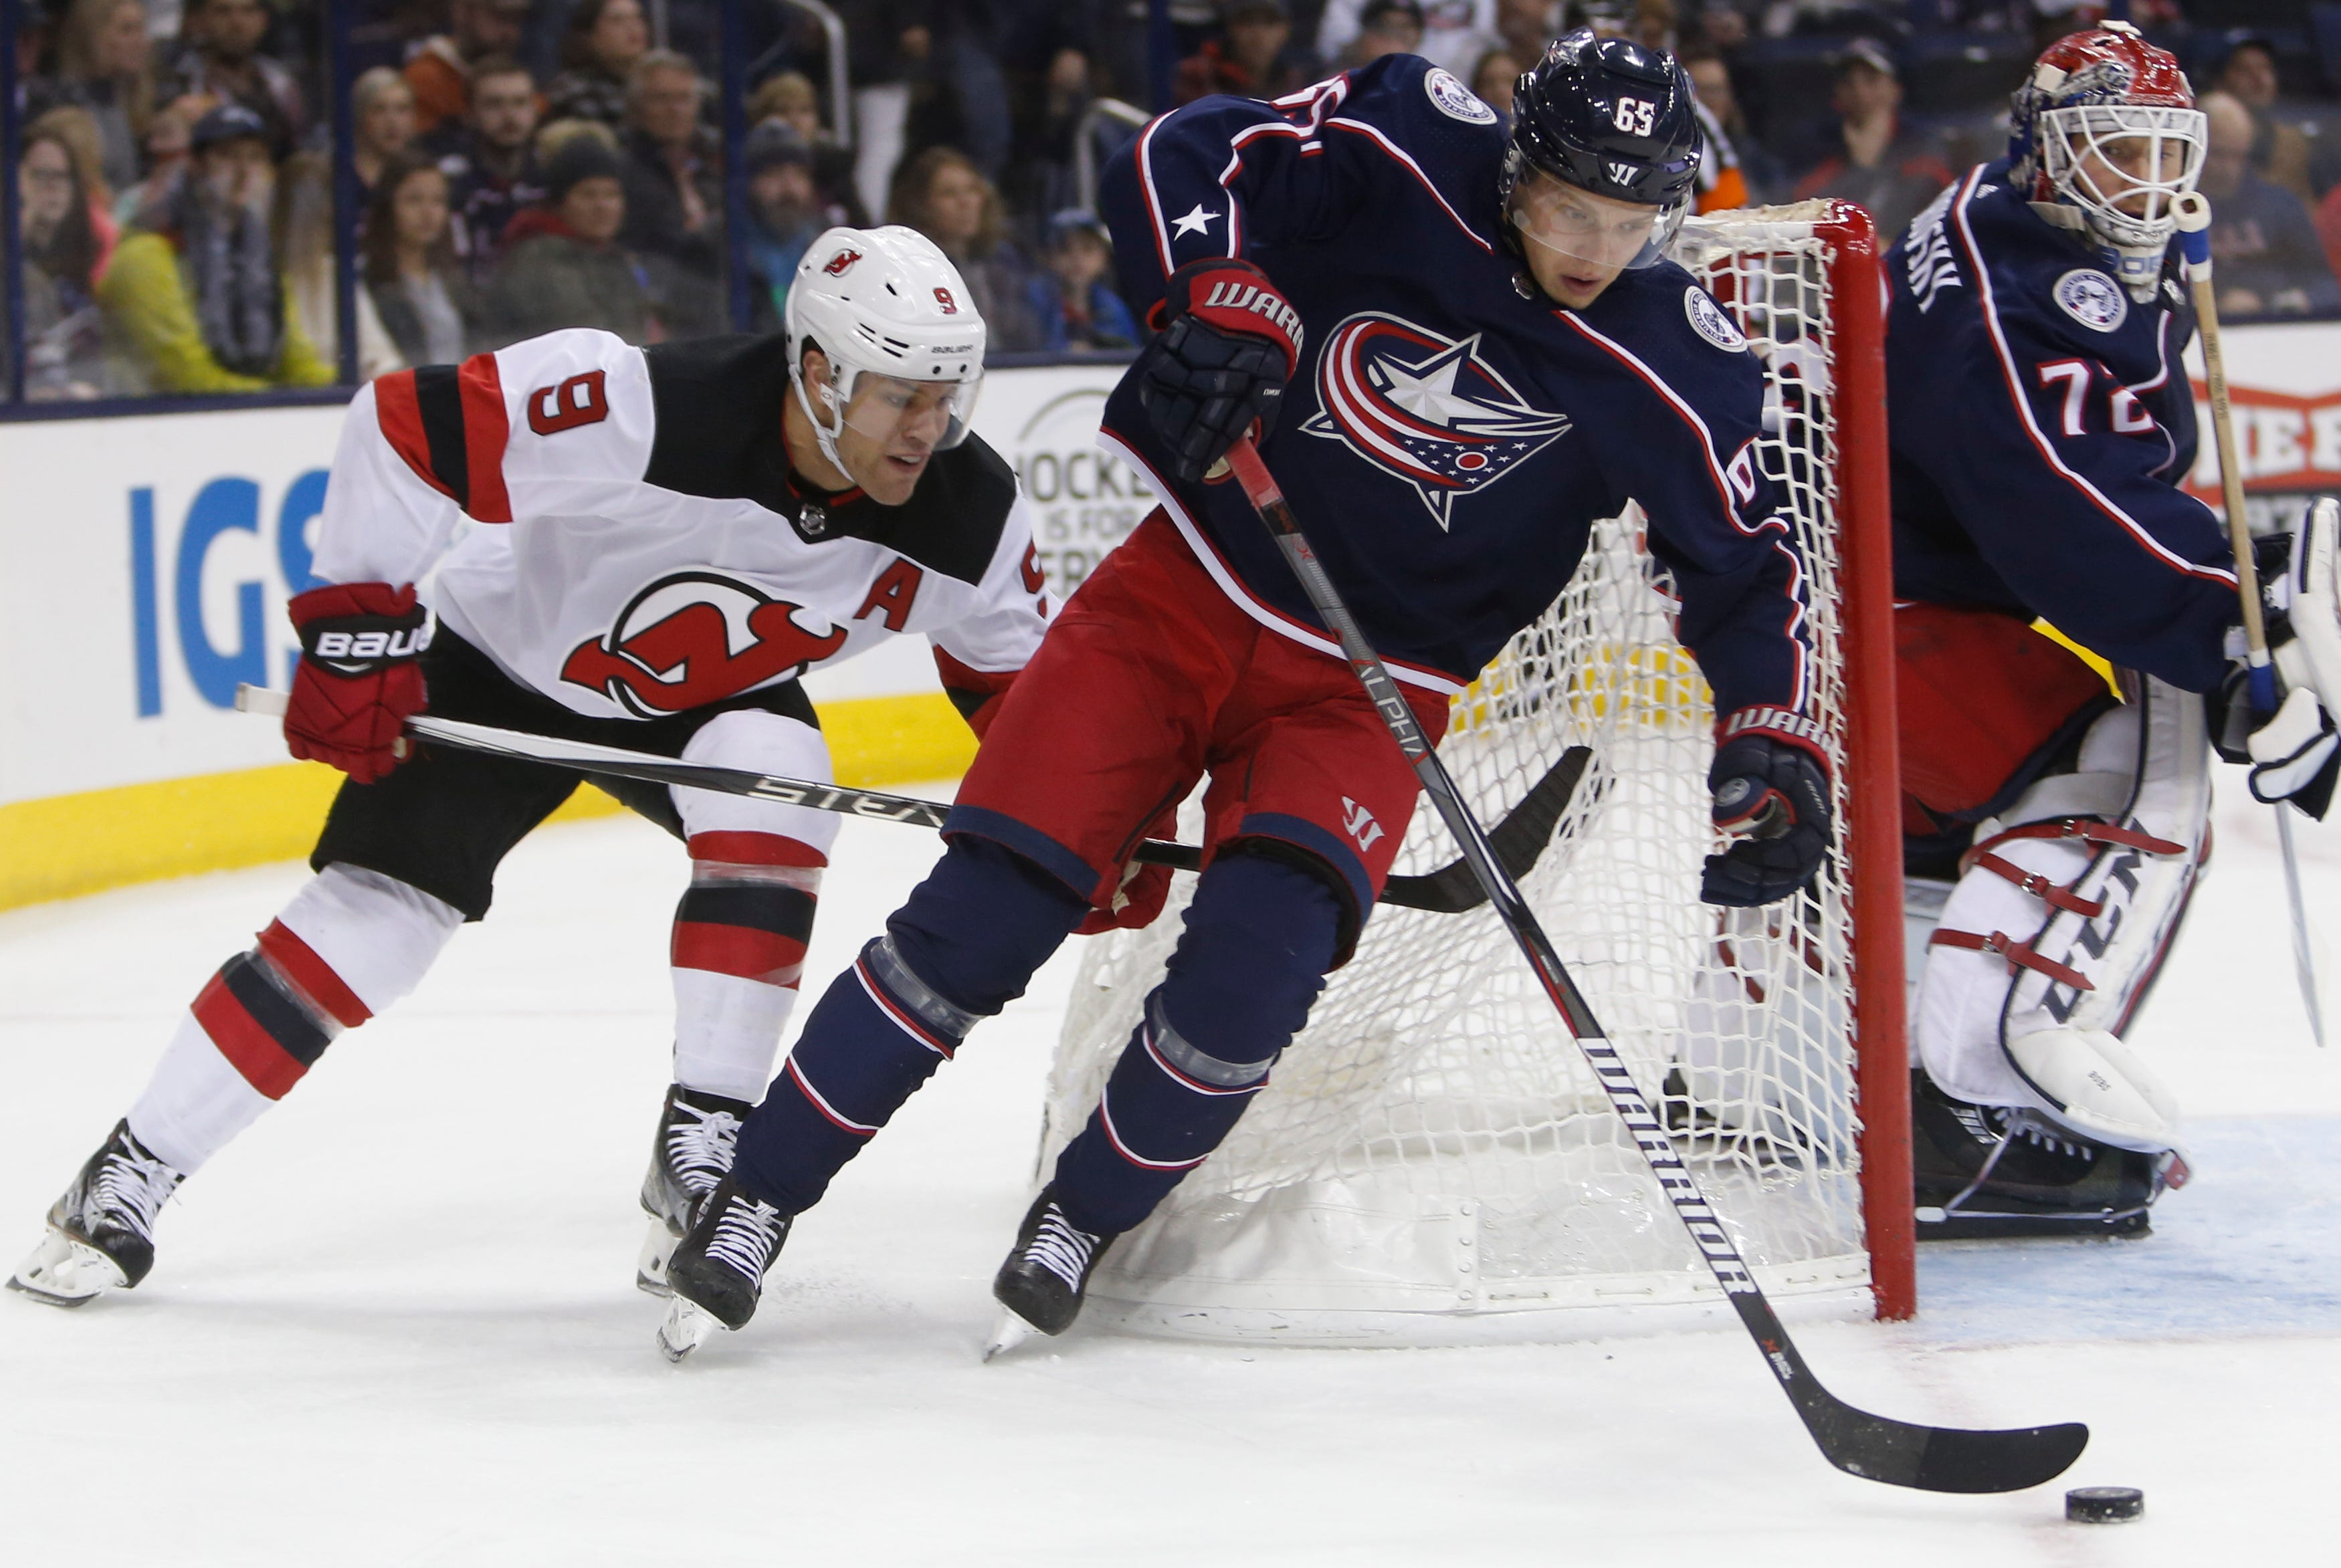 Blue Jackets snap losing streak with 6-1 win over Devils